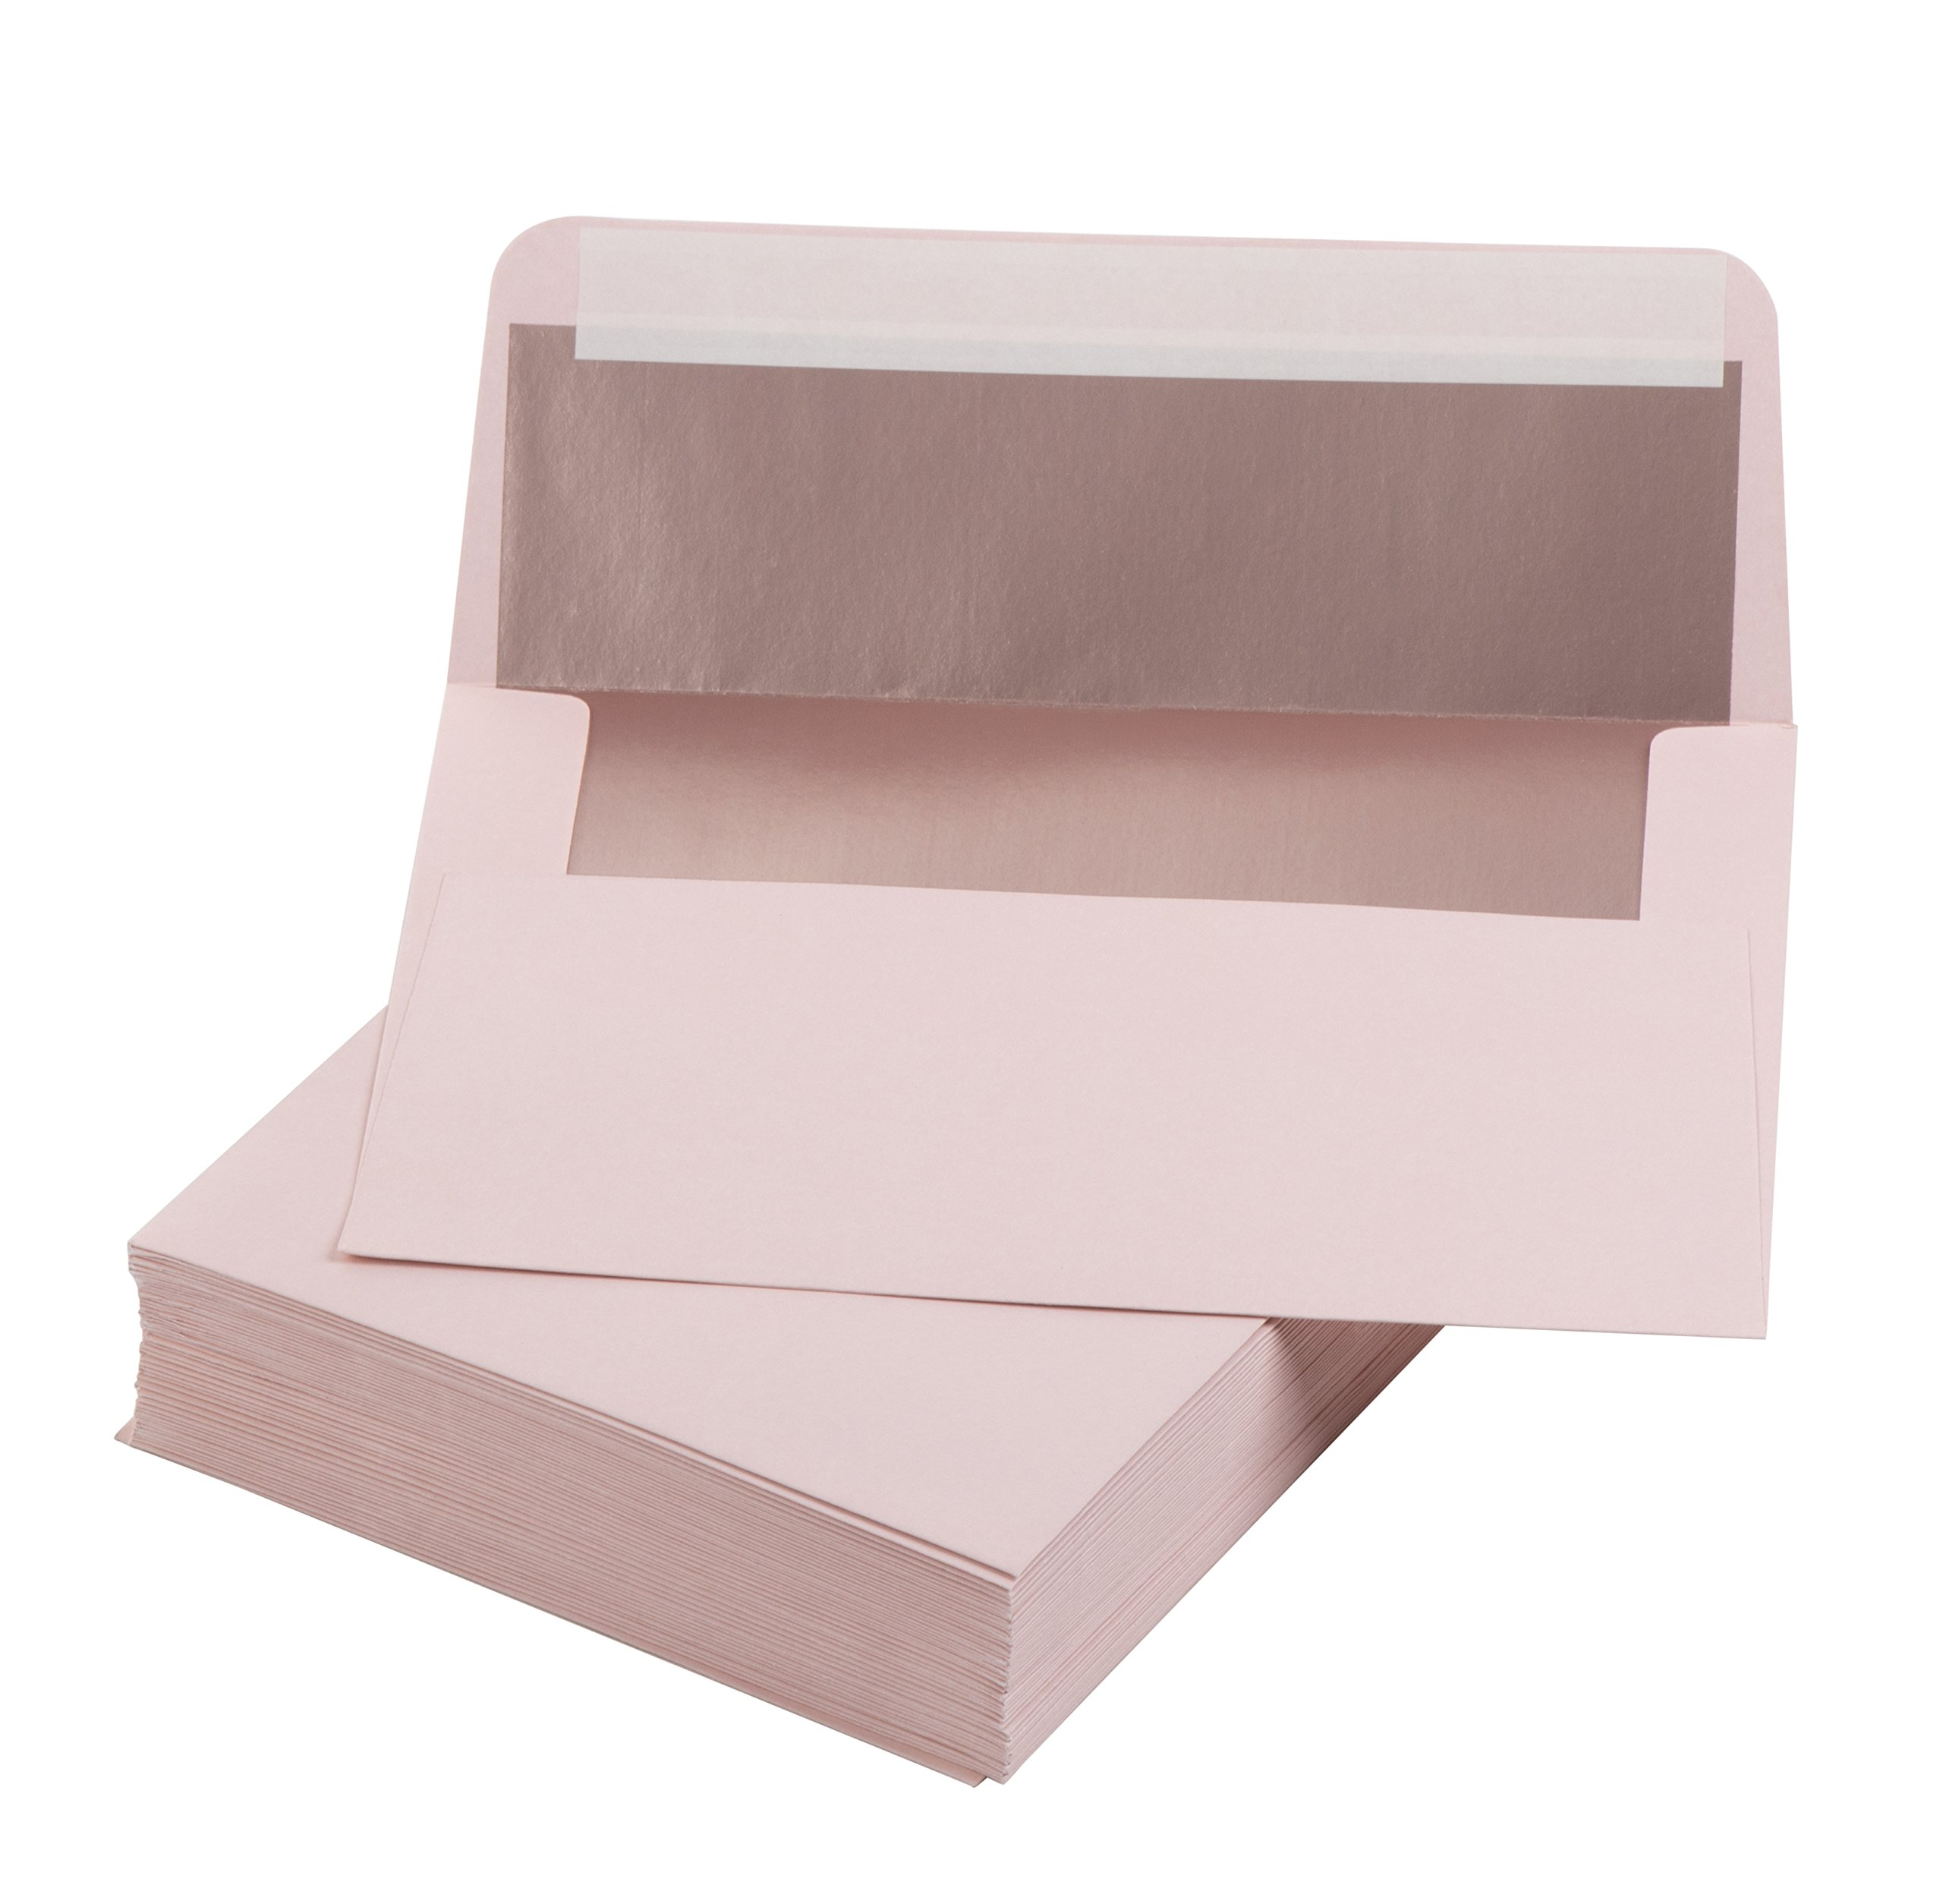 5x7 Envelopes for Invitation- 50-Pack A7 Rose Gold Foil Lined Square Flap Envelopes, Envelopes for Announcements, Photos, Wedding, Graduation, Birthday, Blush with Rose Gold Foil by Best Paper Greetings